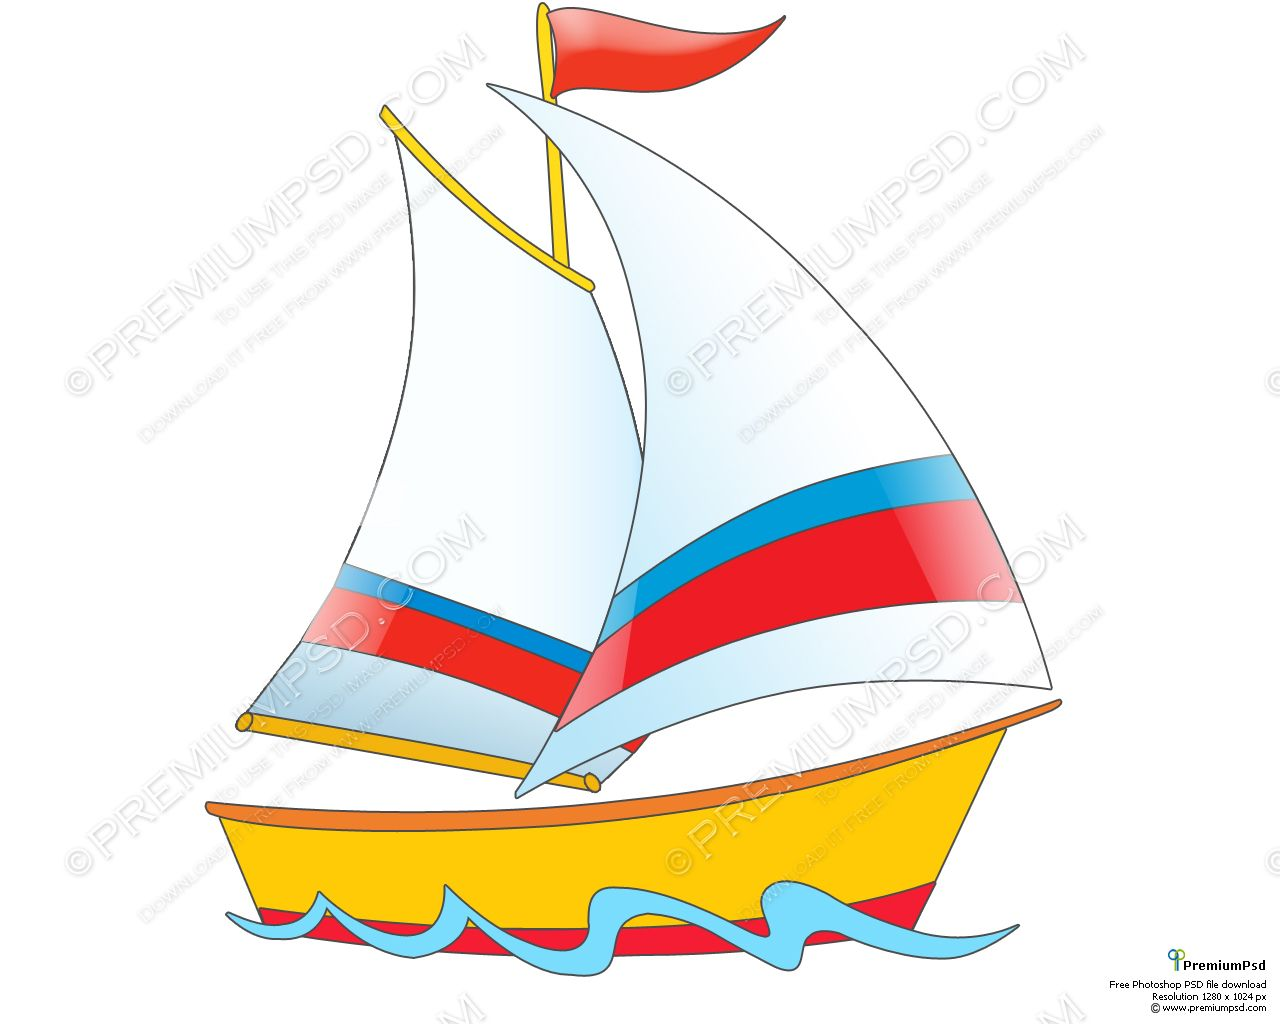 cartoon boat cartoon ship design psd download premium psd rh pinterest com sailboat cartoon picture sailboat cartoon picture